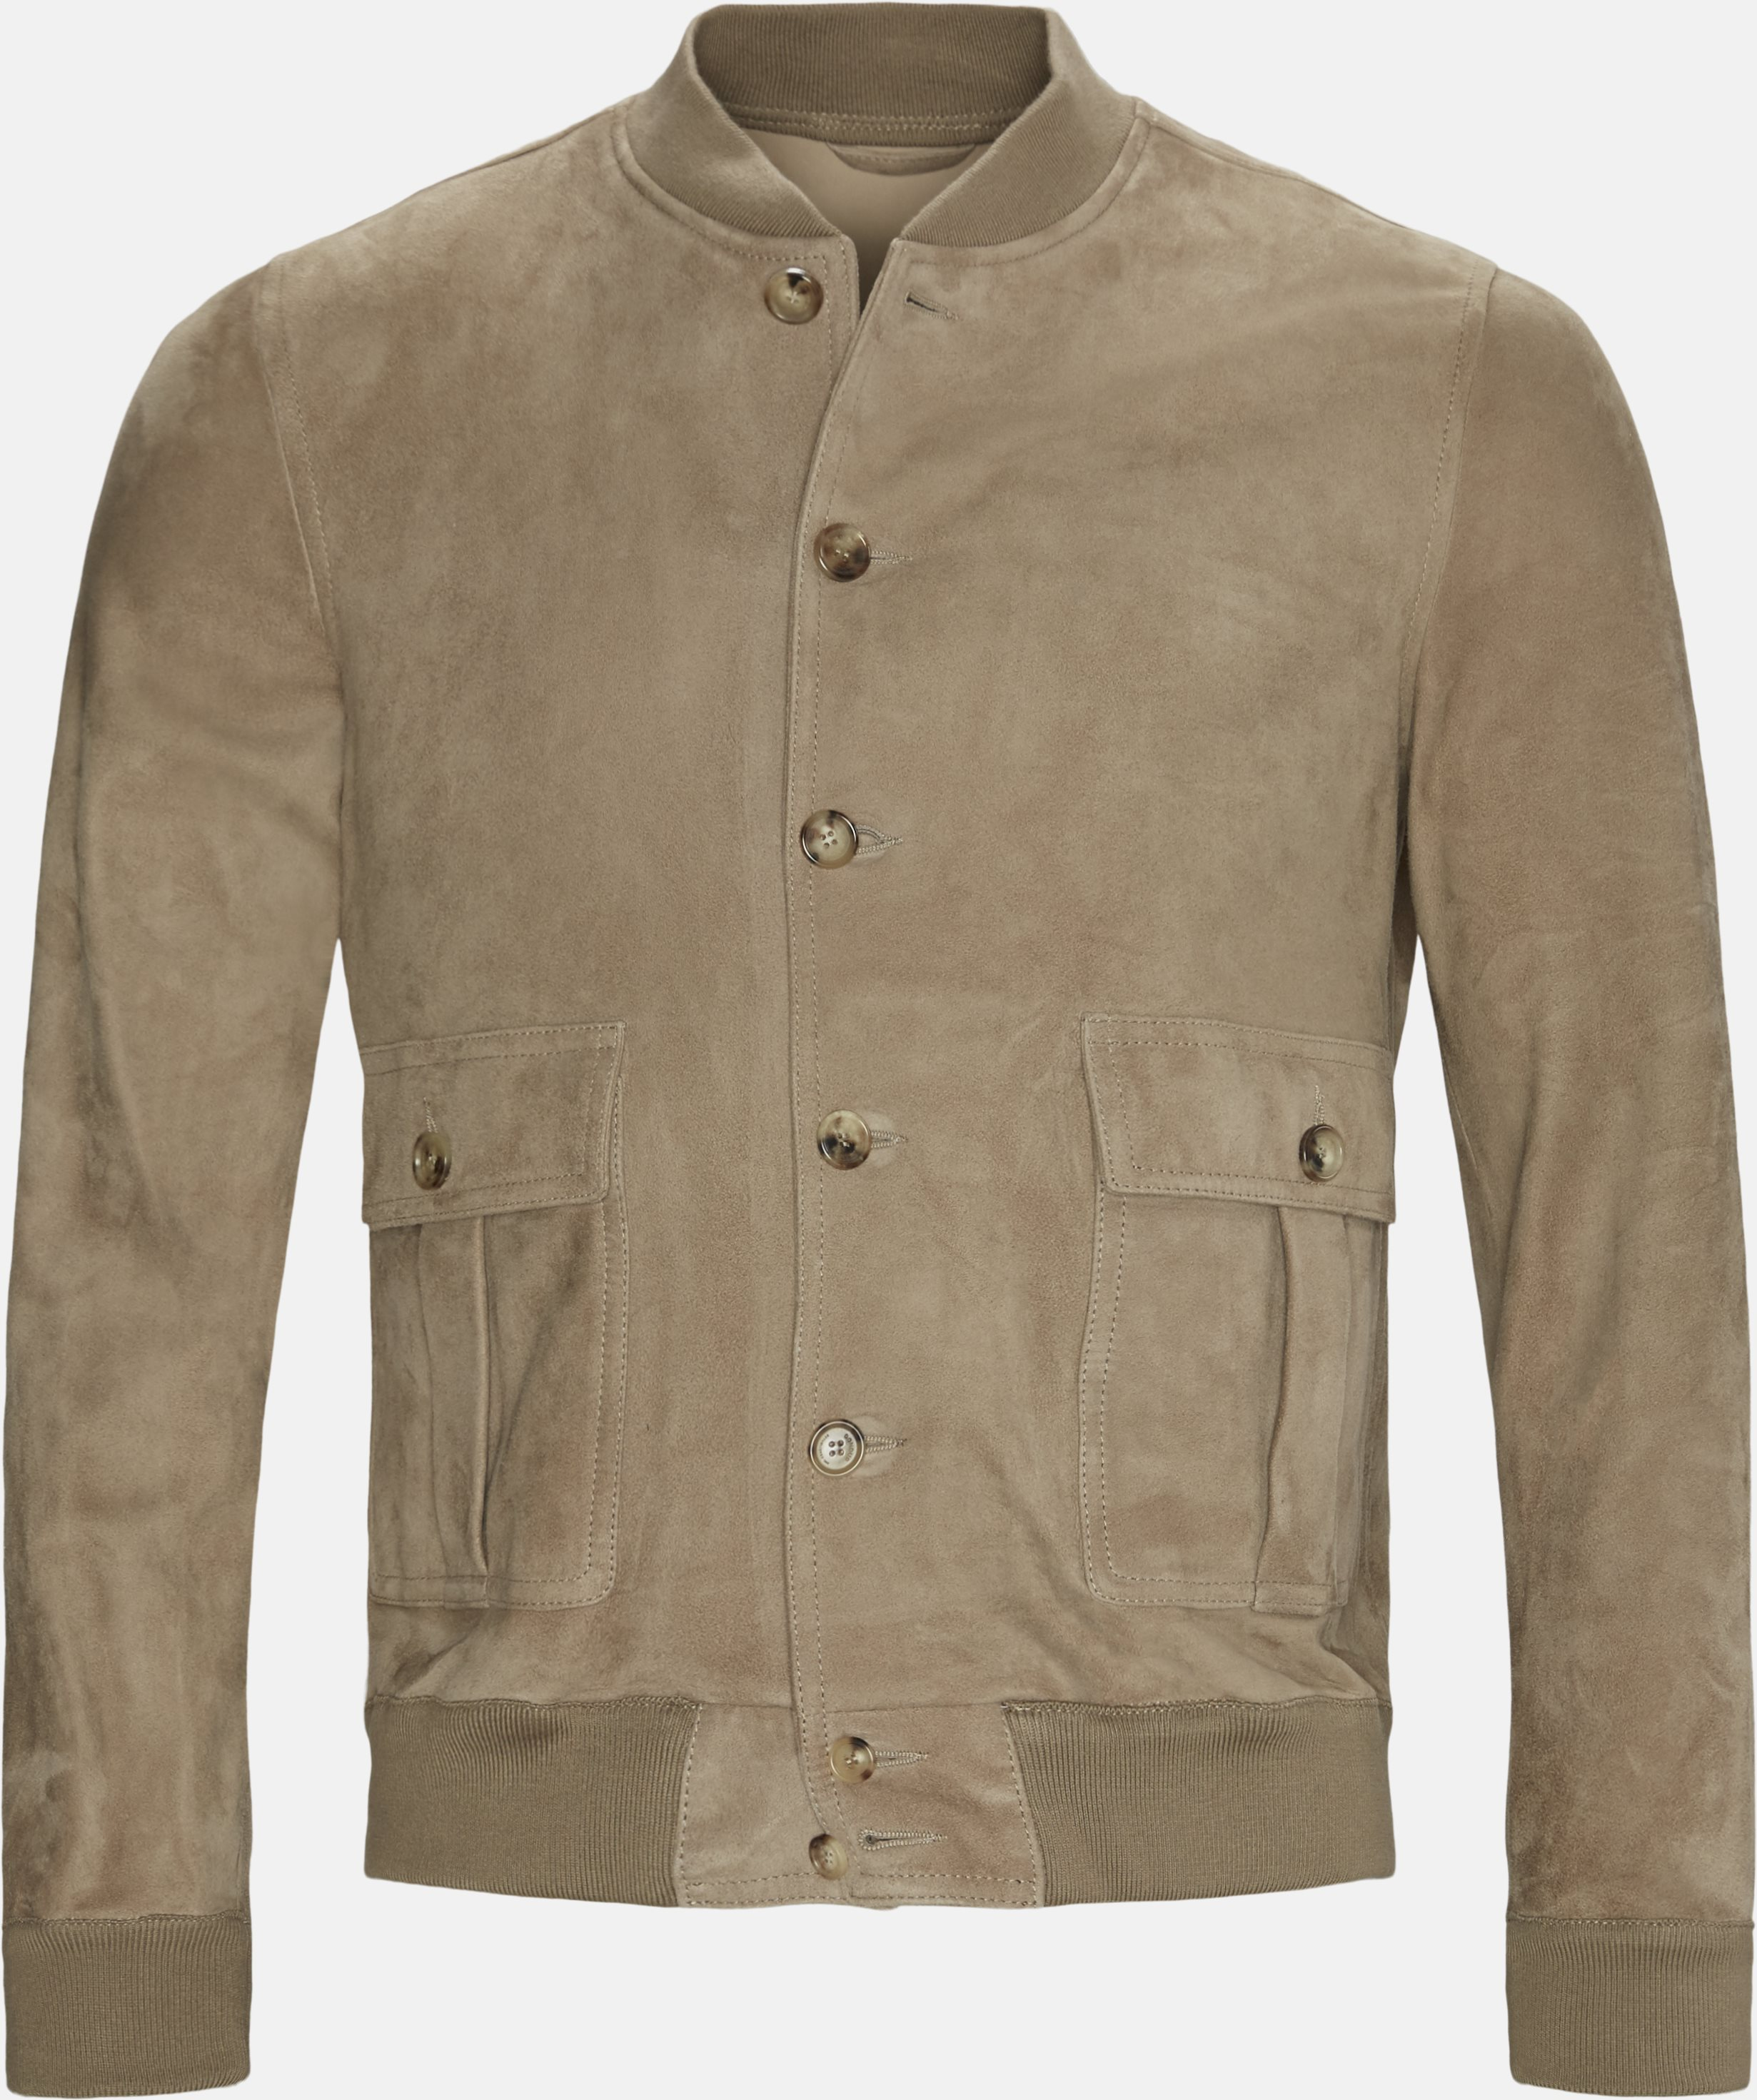 Jackets - Regular fit - Sand